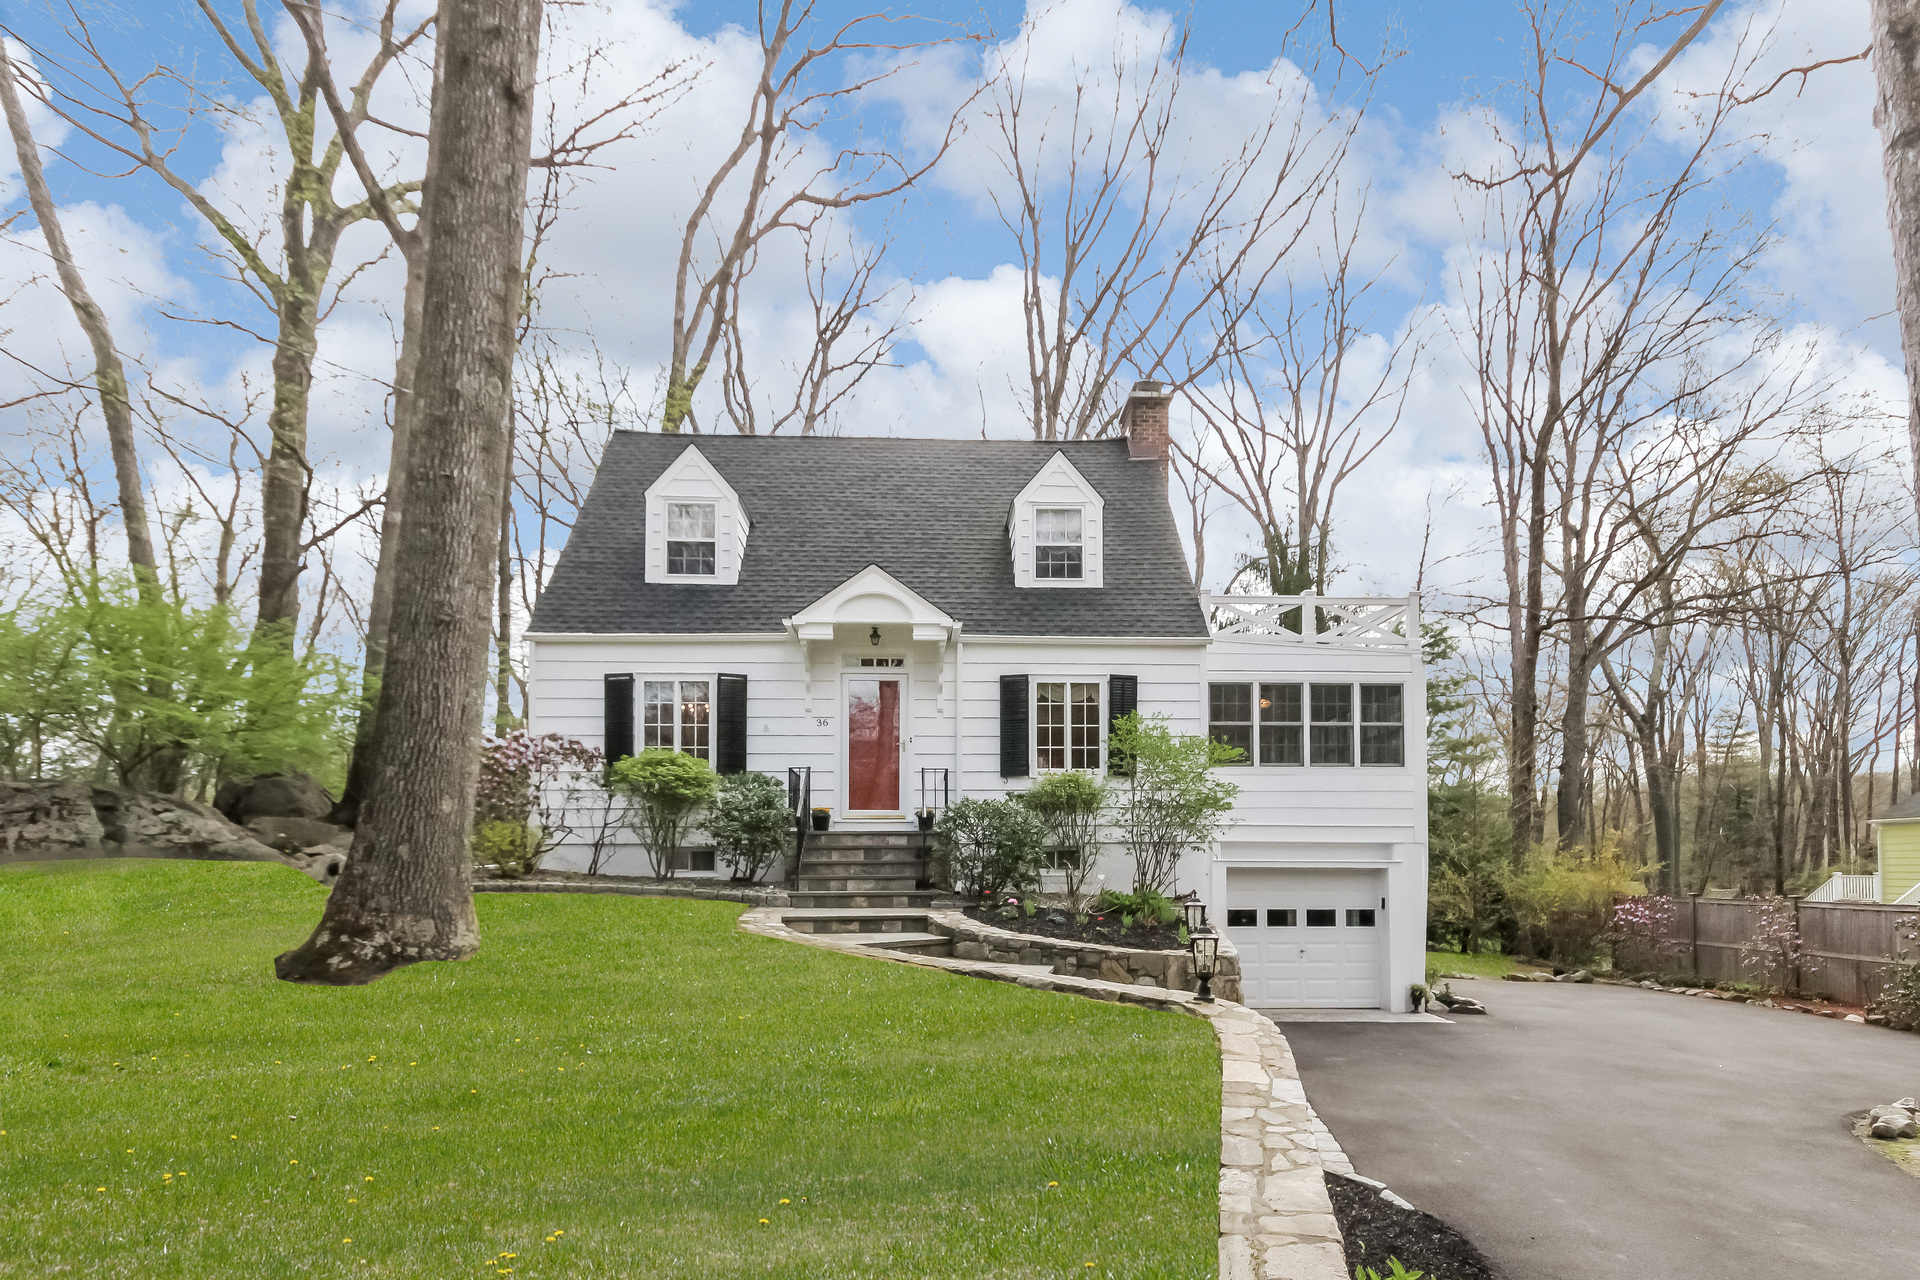 Single Family Home for Sale at Location, Location 36 Clover Drive Wilton, Connecticut, 06897 United States